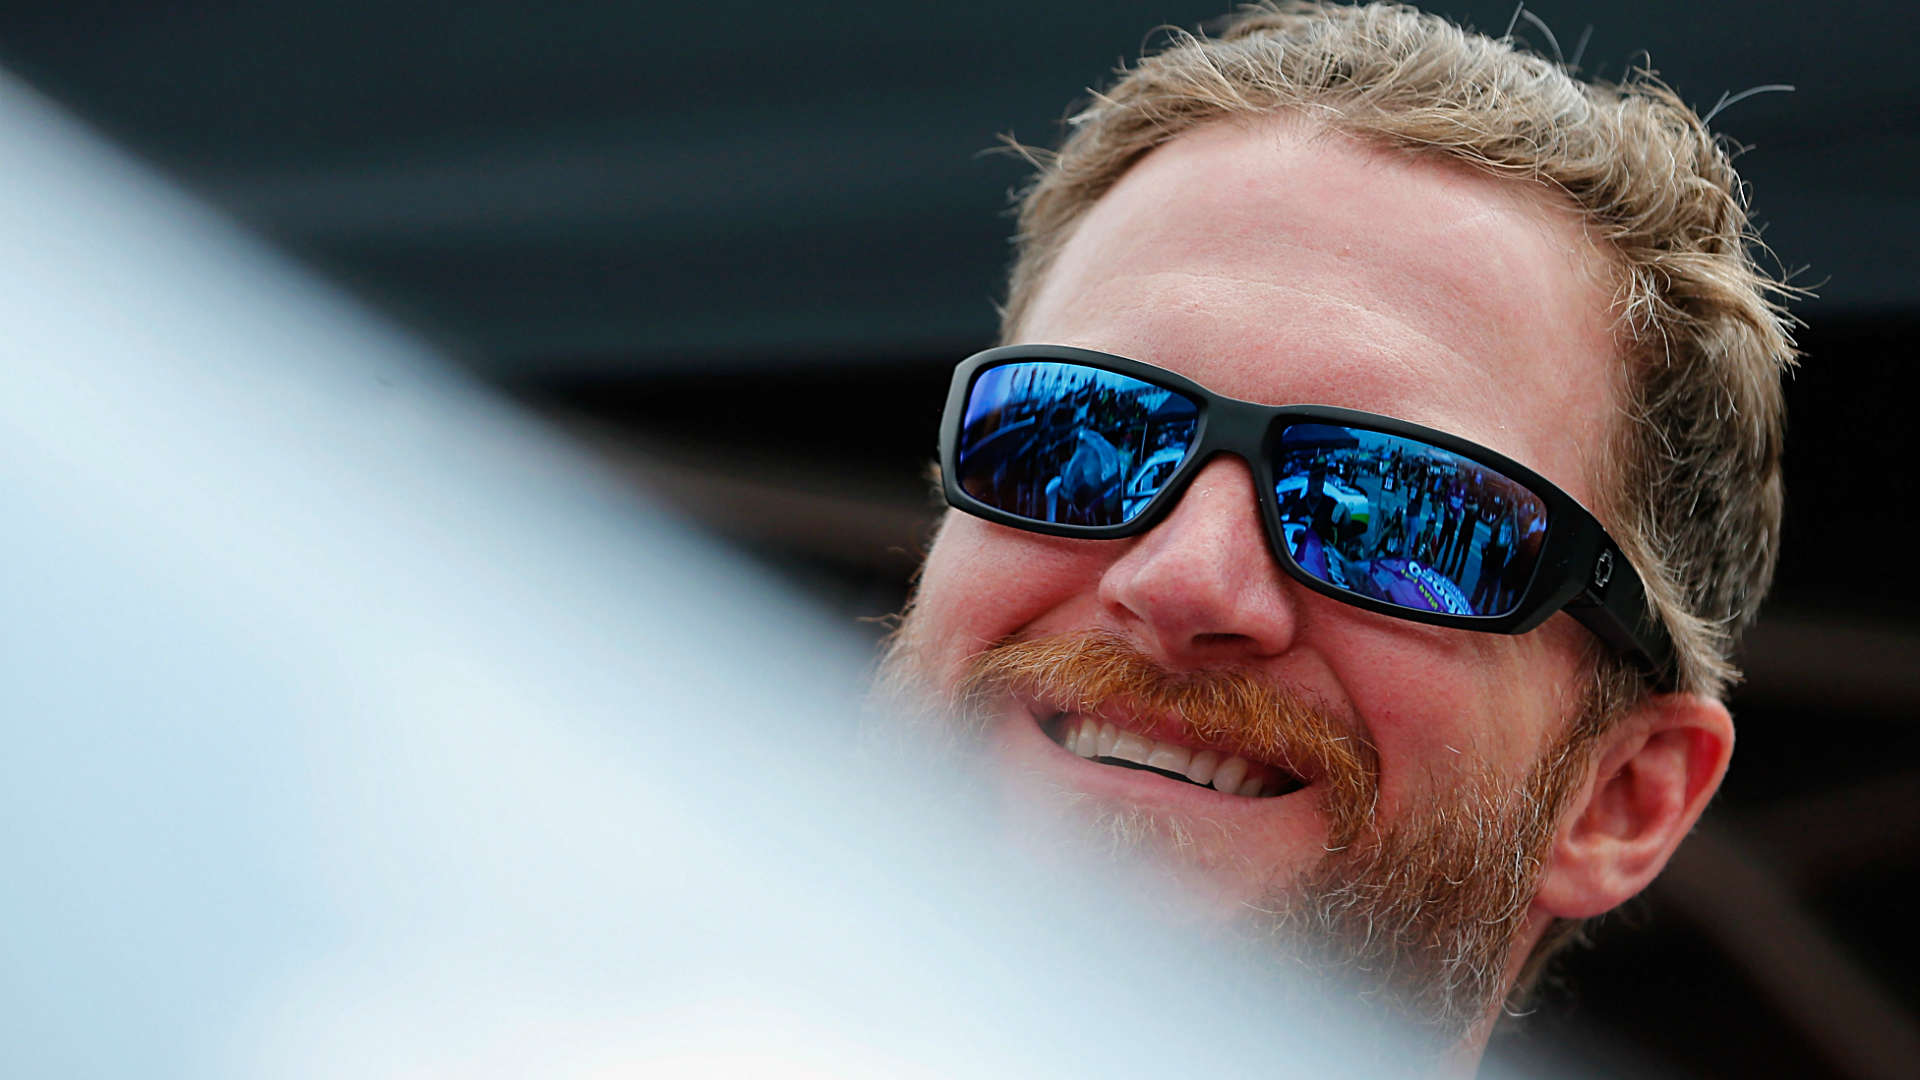 Dale-Earnhardt-Jr-081717-Getty-FTR.jpg